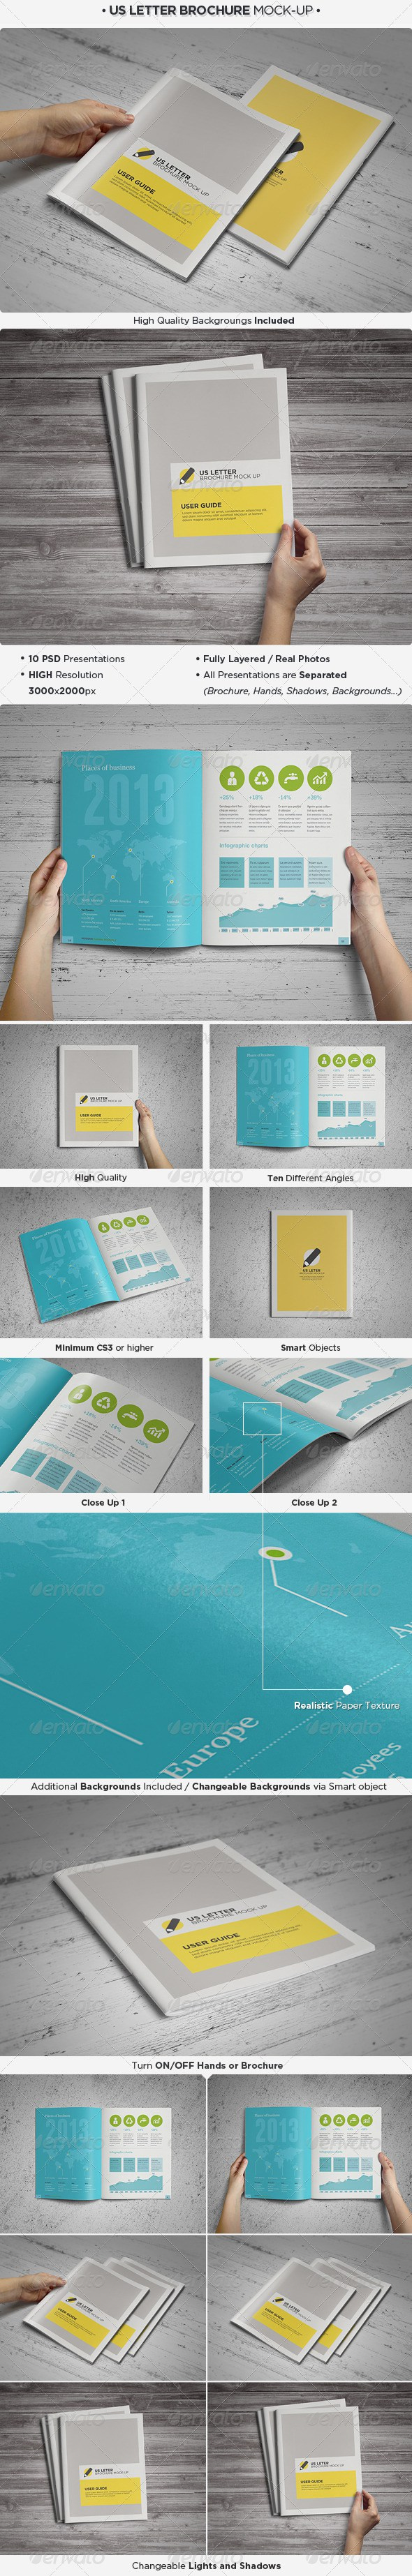 Free Booklet Template Prepossessing Us Letter Brochure Catalog Mockup  Psd Mockups  Pinterest  Free .